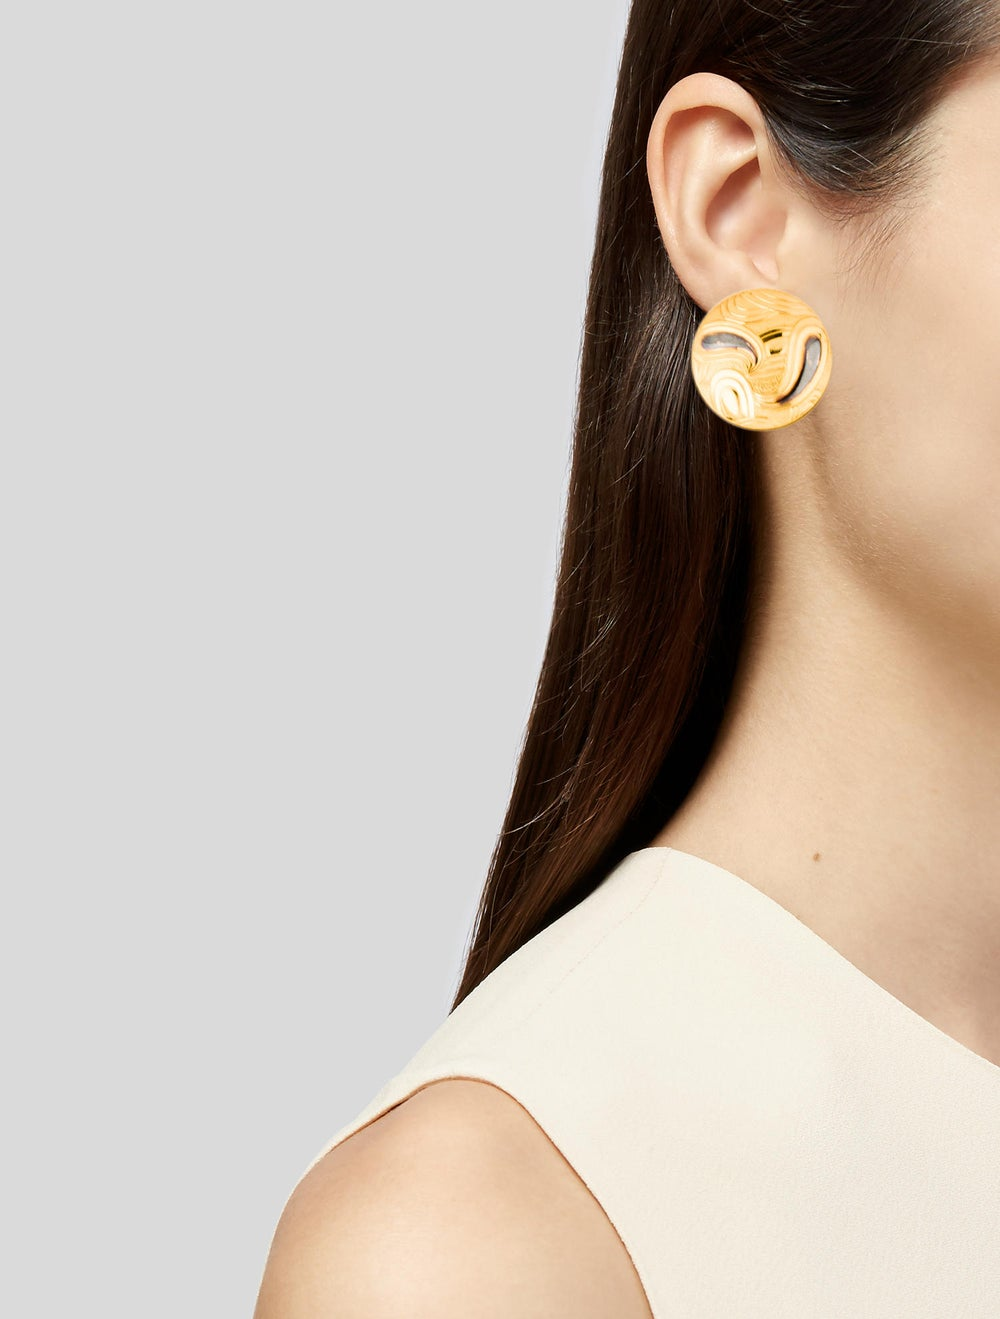 Lanvin Vintage Paisley Clip-On Earrings Gold - image 2